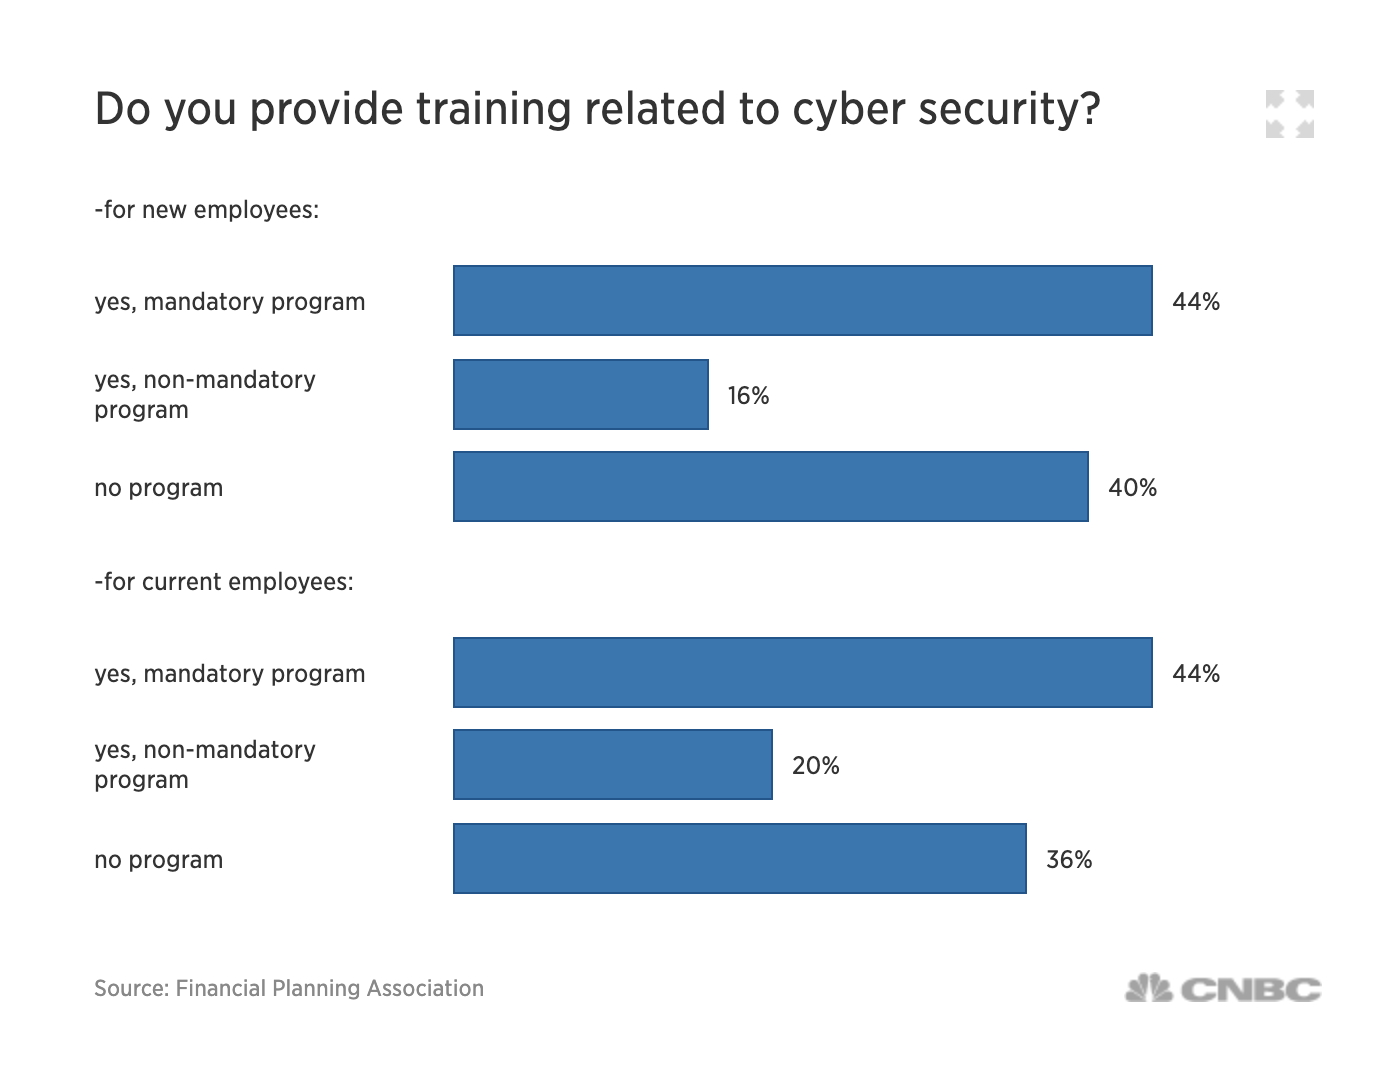 Companies Providing Cyber Security Training